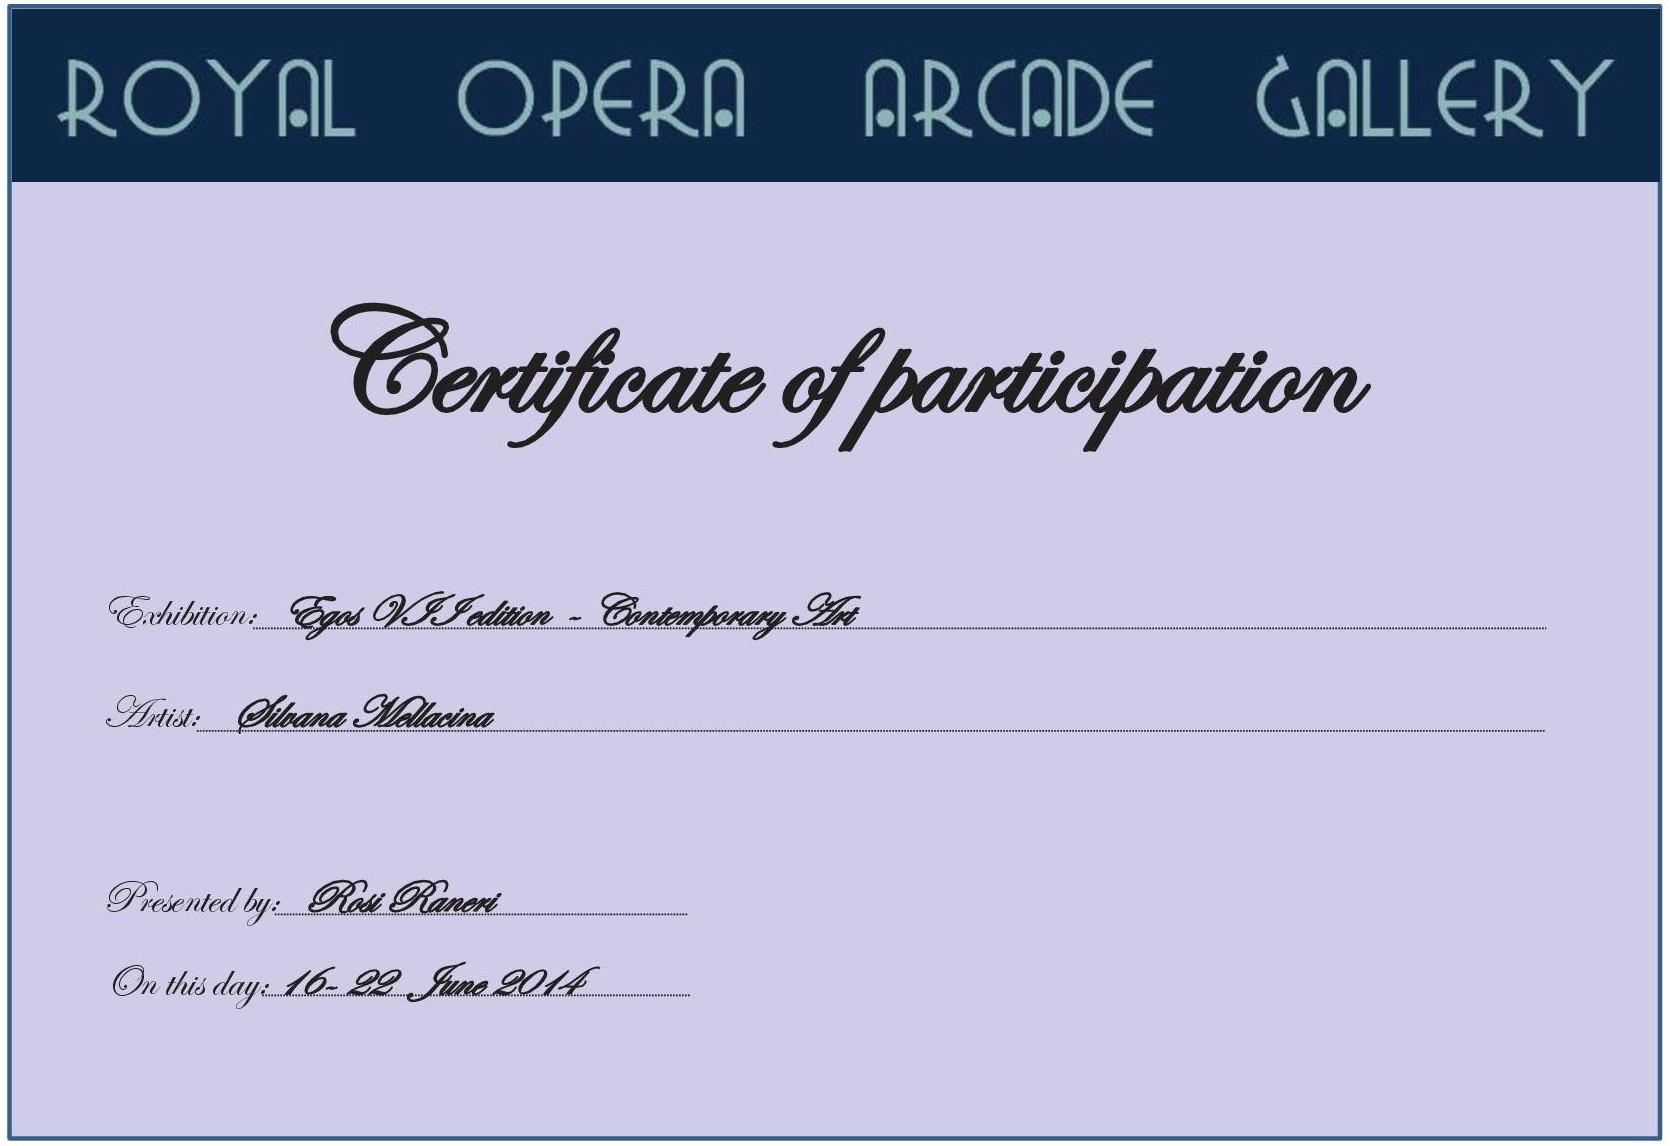 Certificate of participation - ROA - Mellacina.pdf